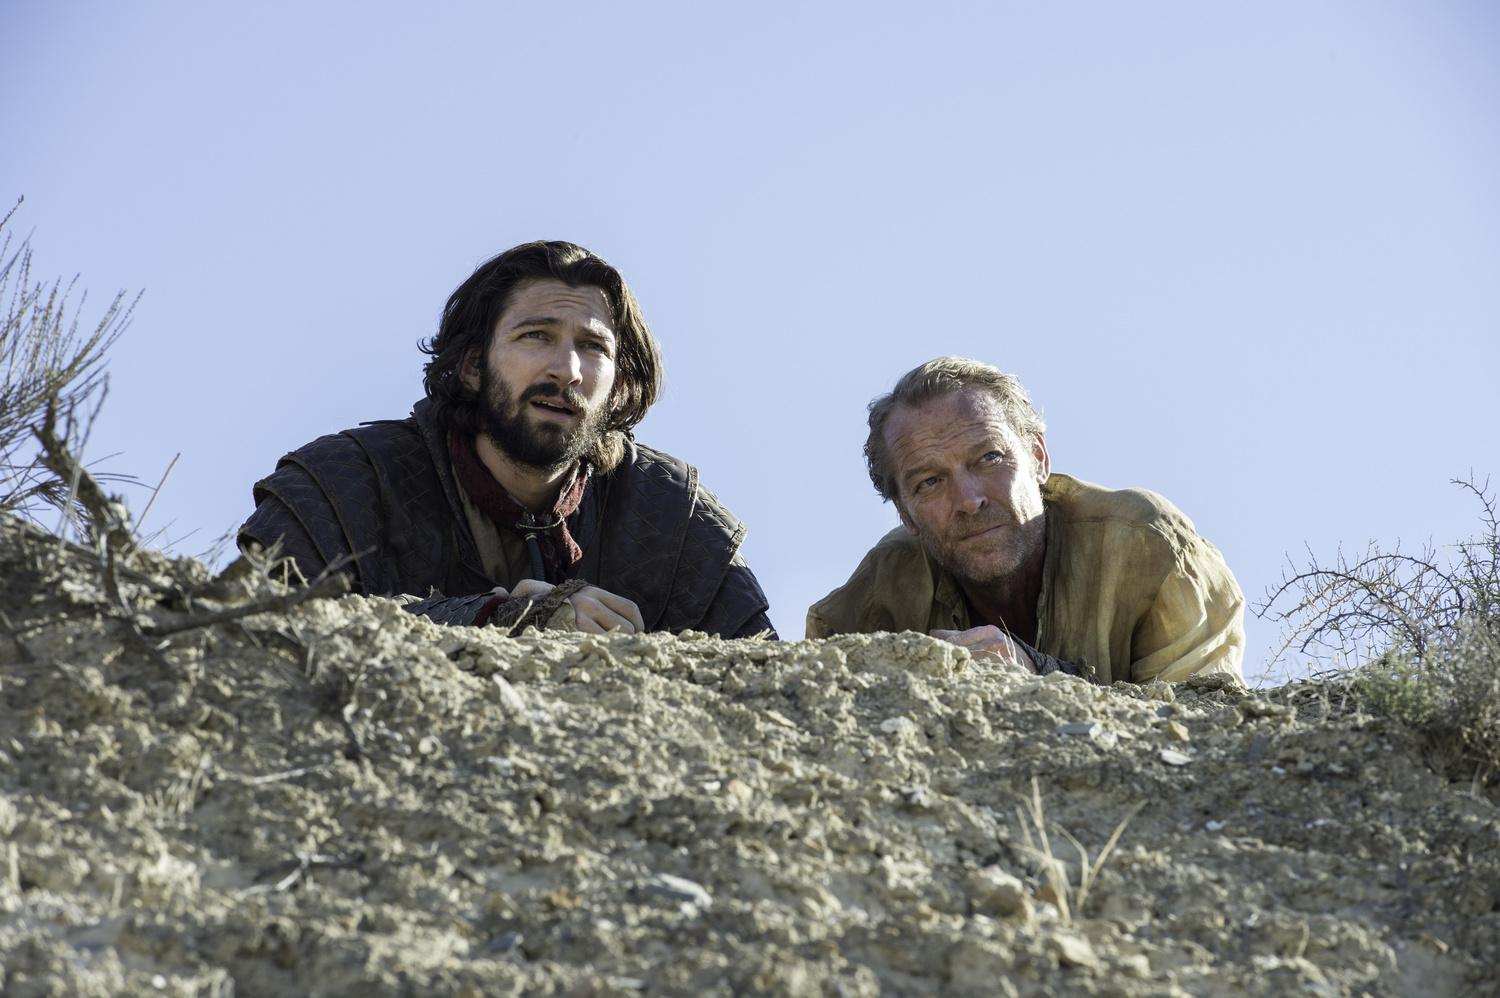 Michiel Huisman as Daario Naharis and Iain Glen as Jorah Mormont Credit: Macall B. Polay/HBO